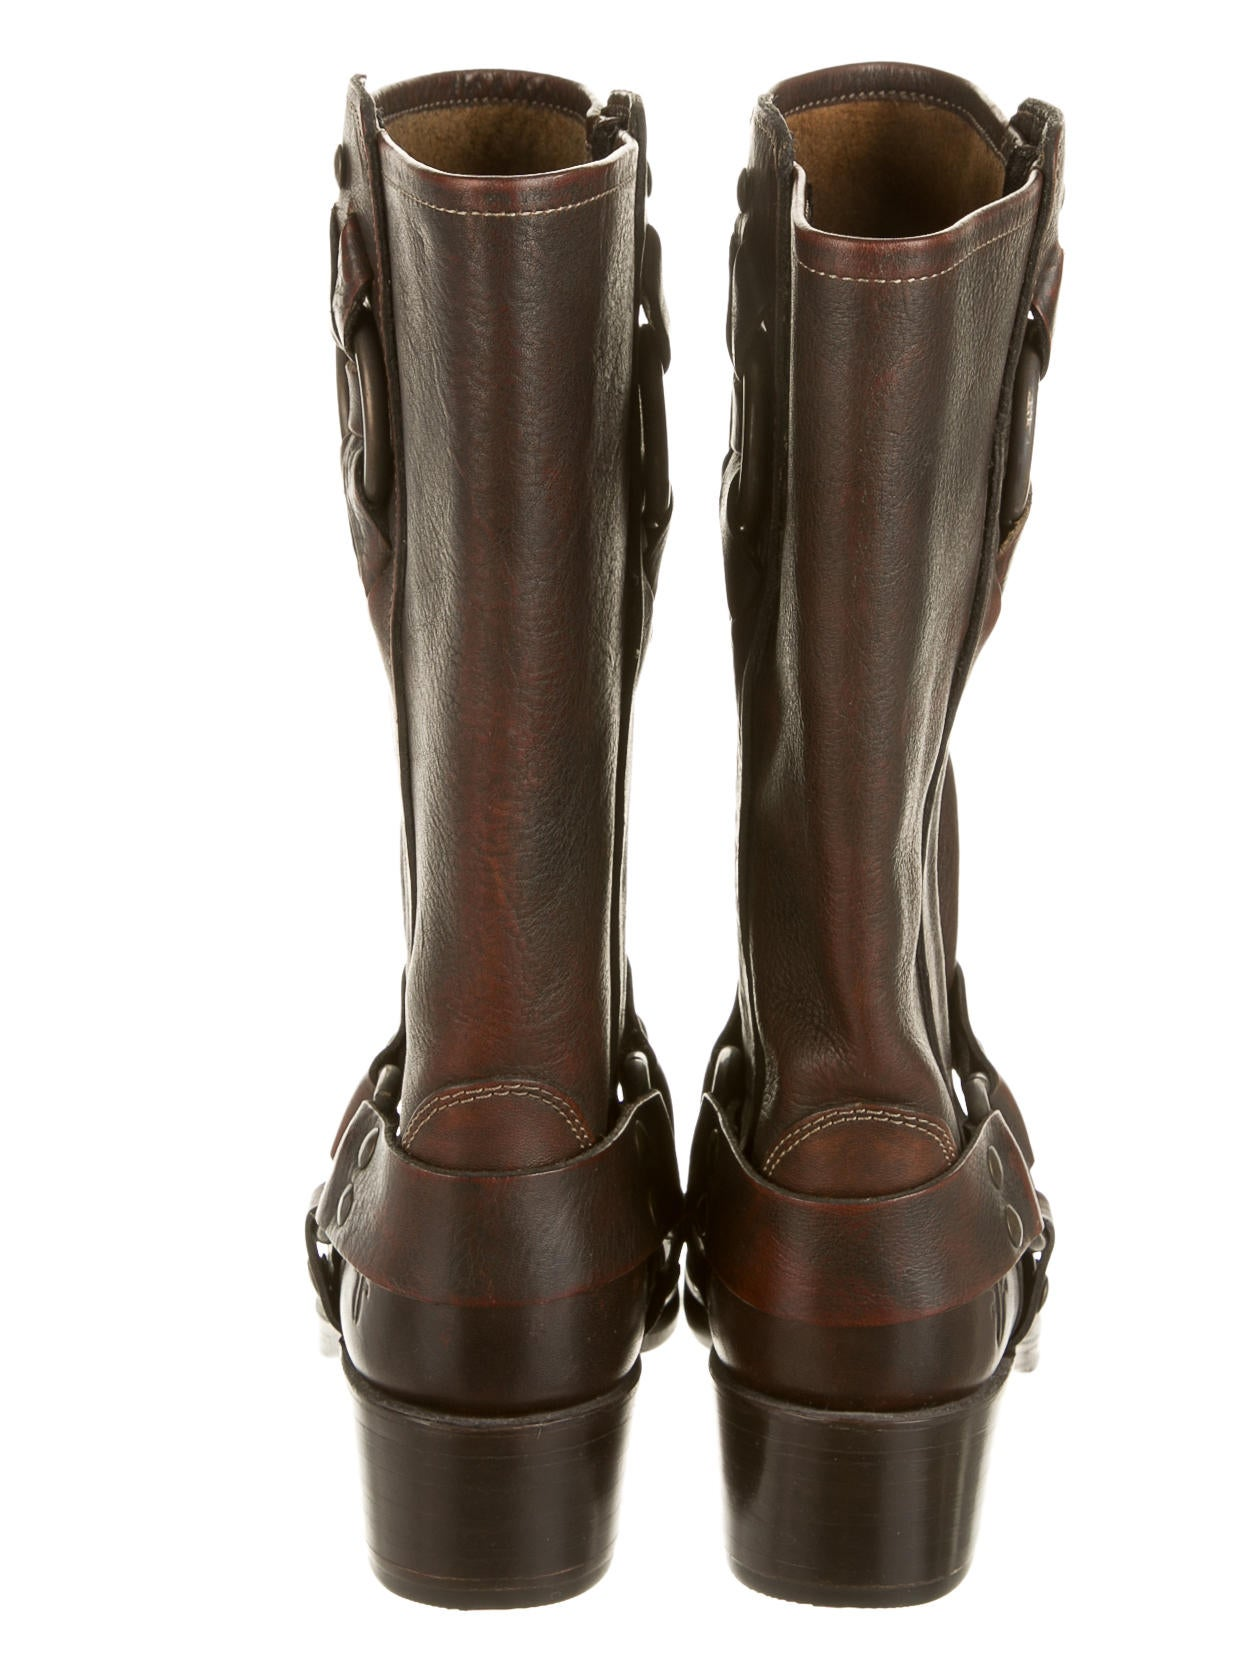 frye boots shoes wf820098 the realreal